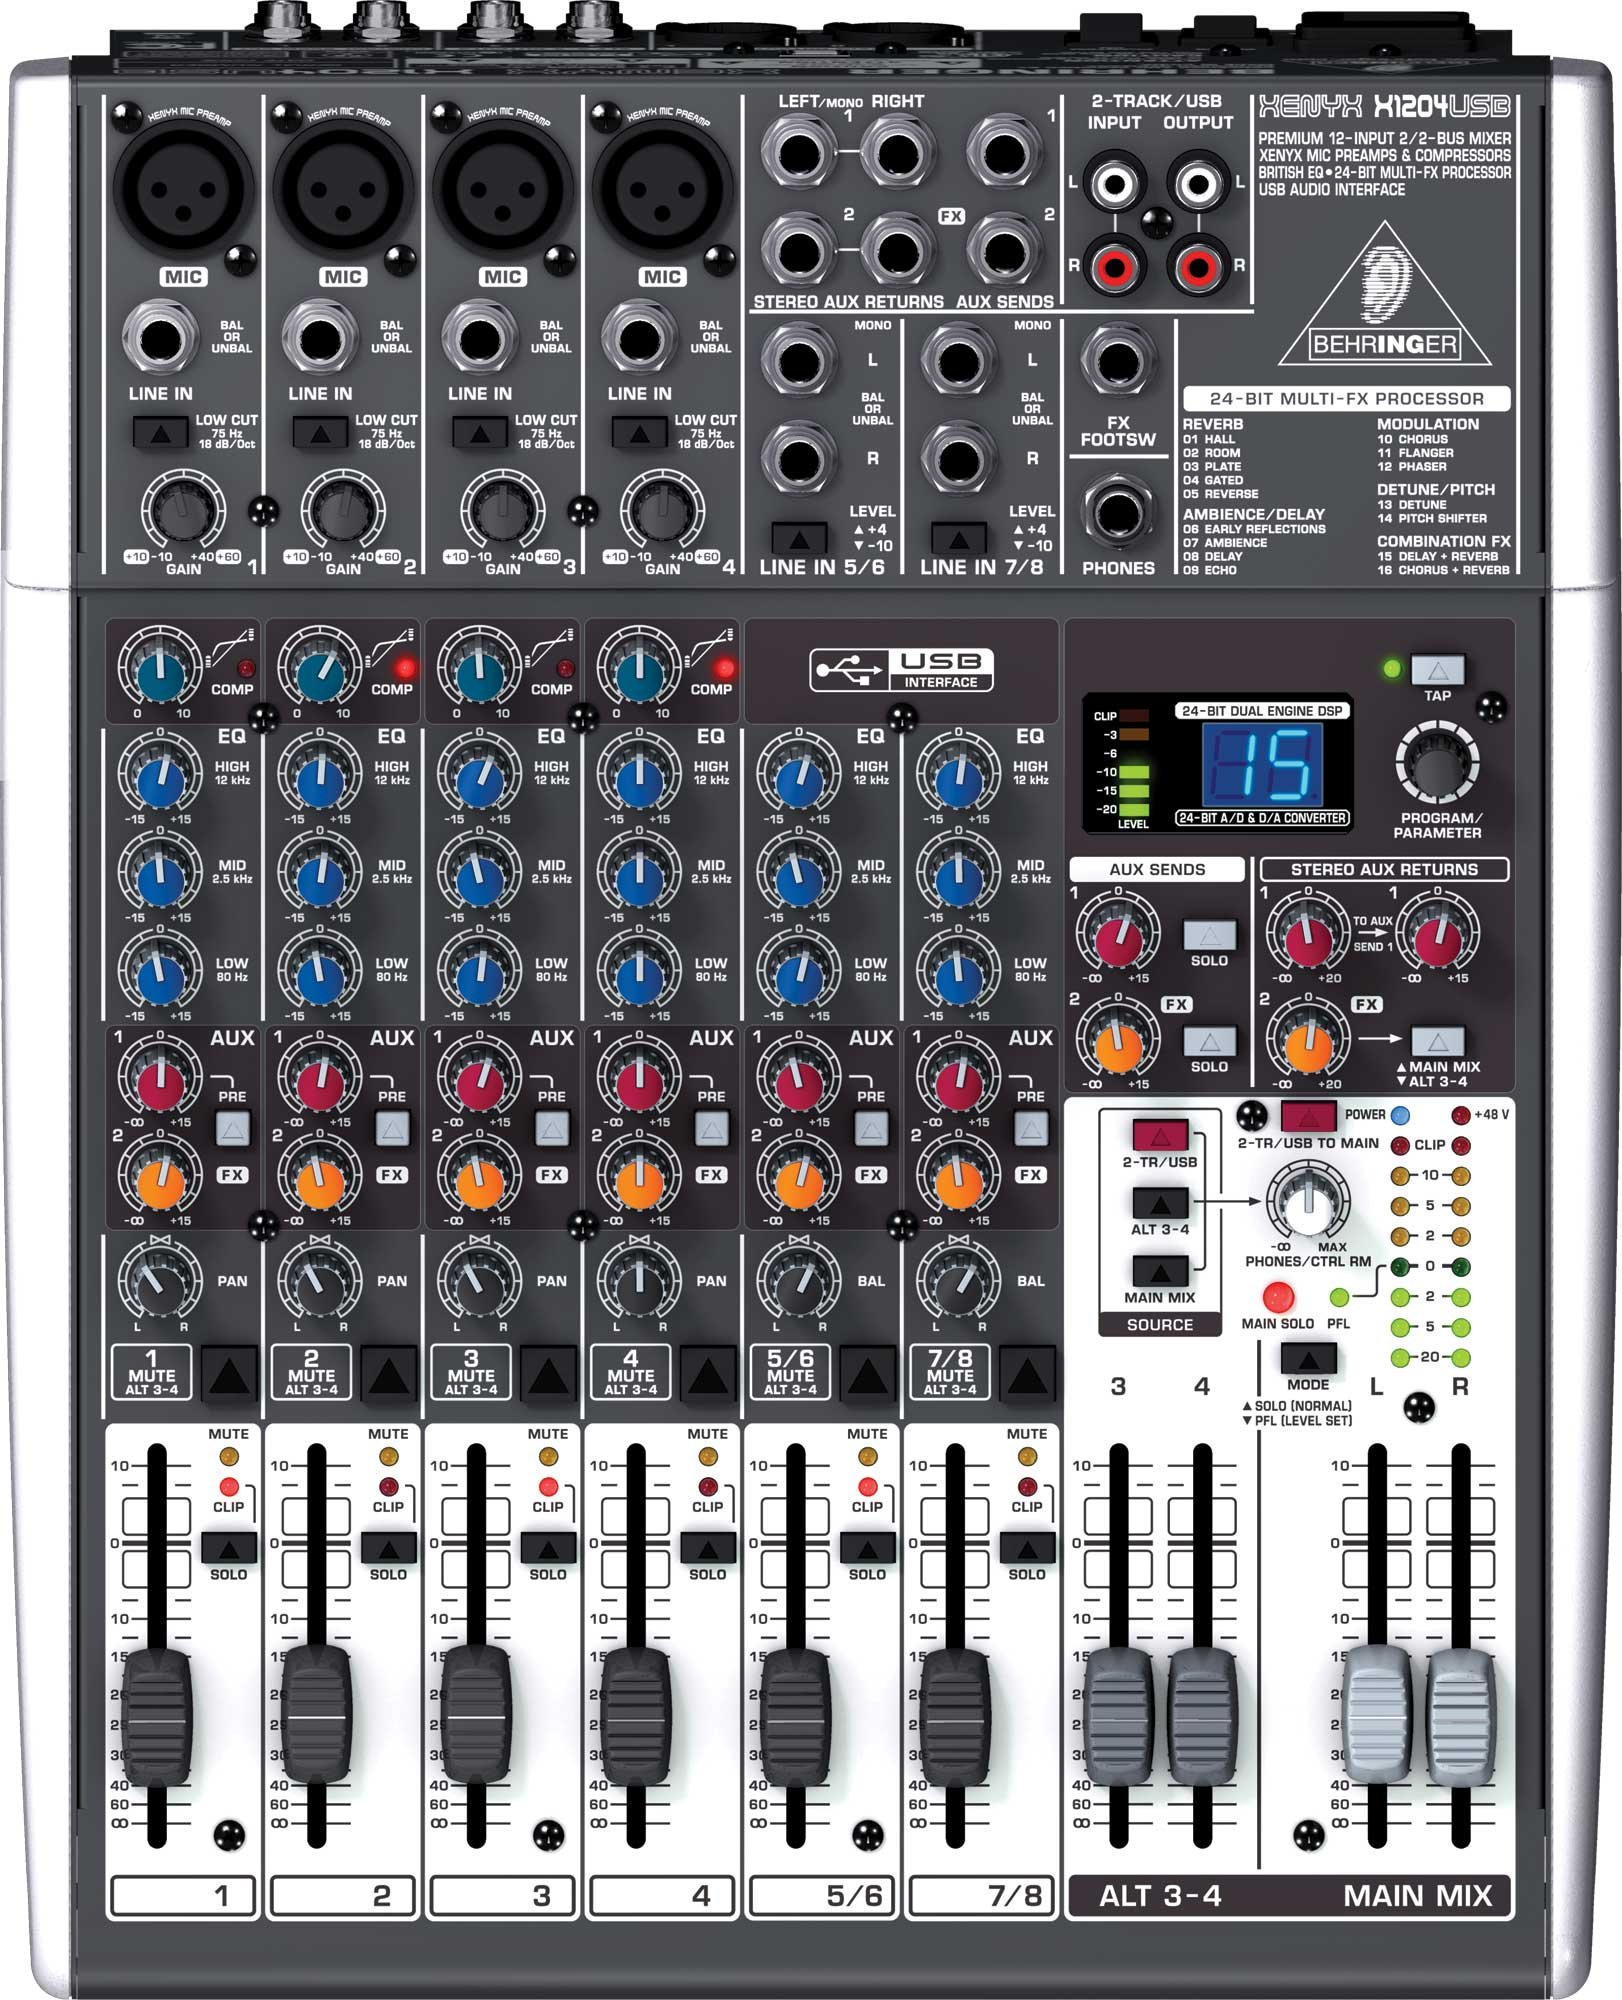 12 Input Mixer with USB and energyXT2.5 Software